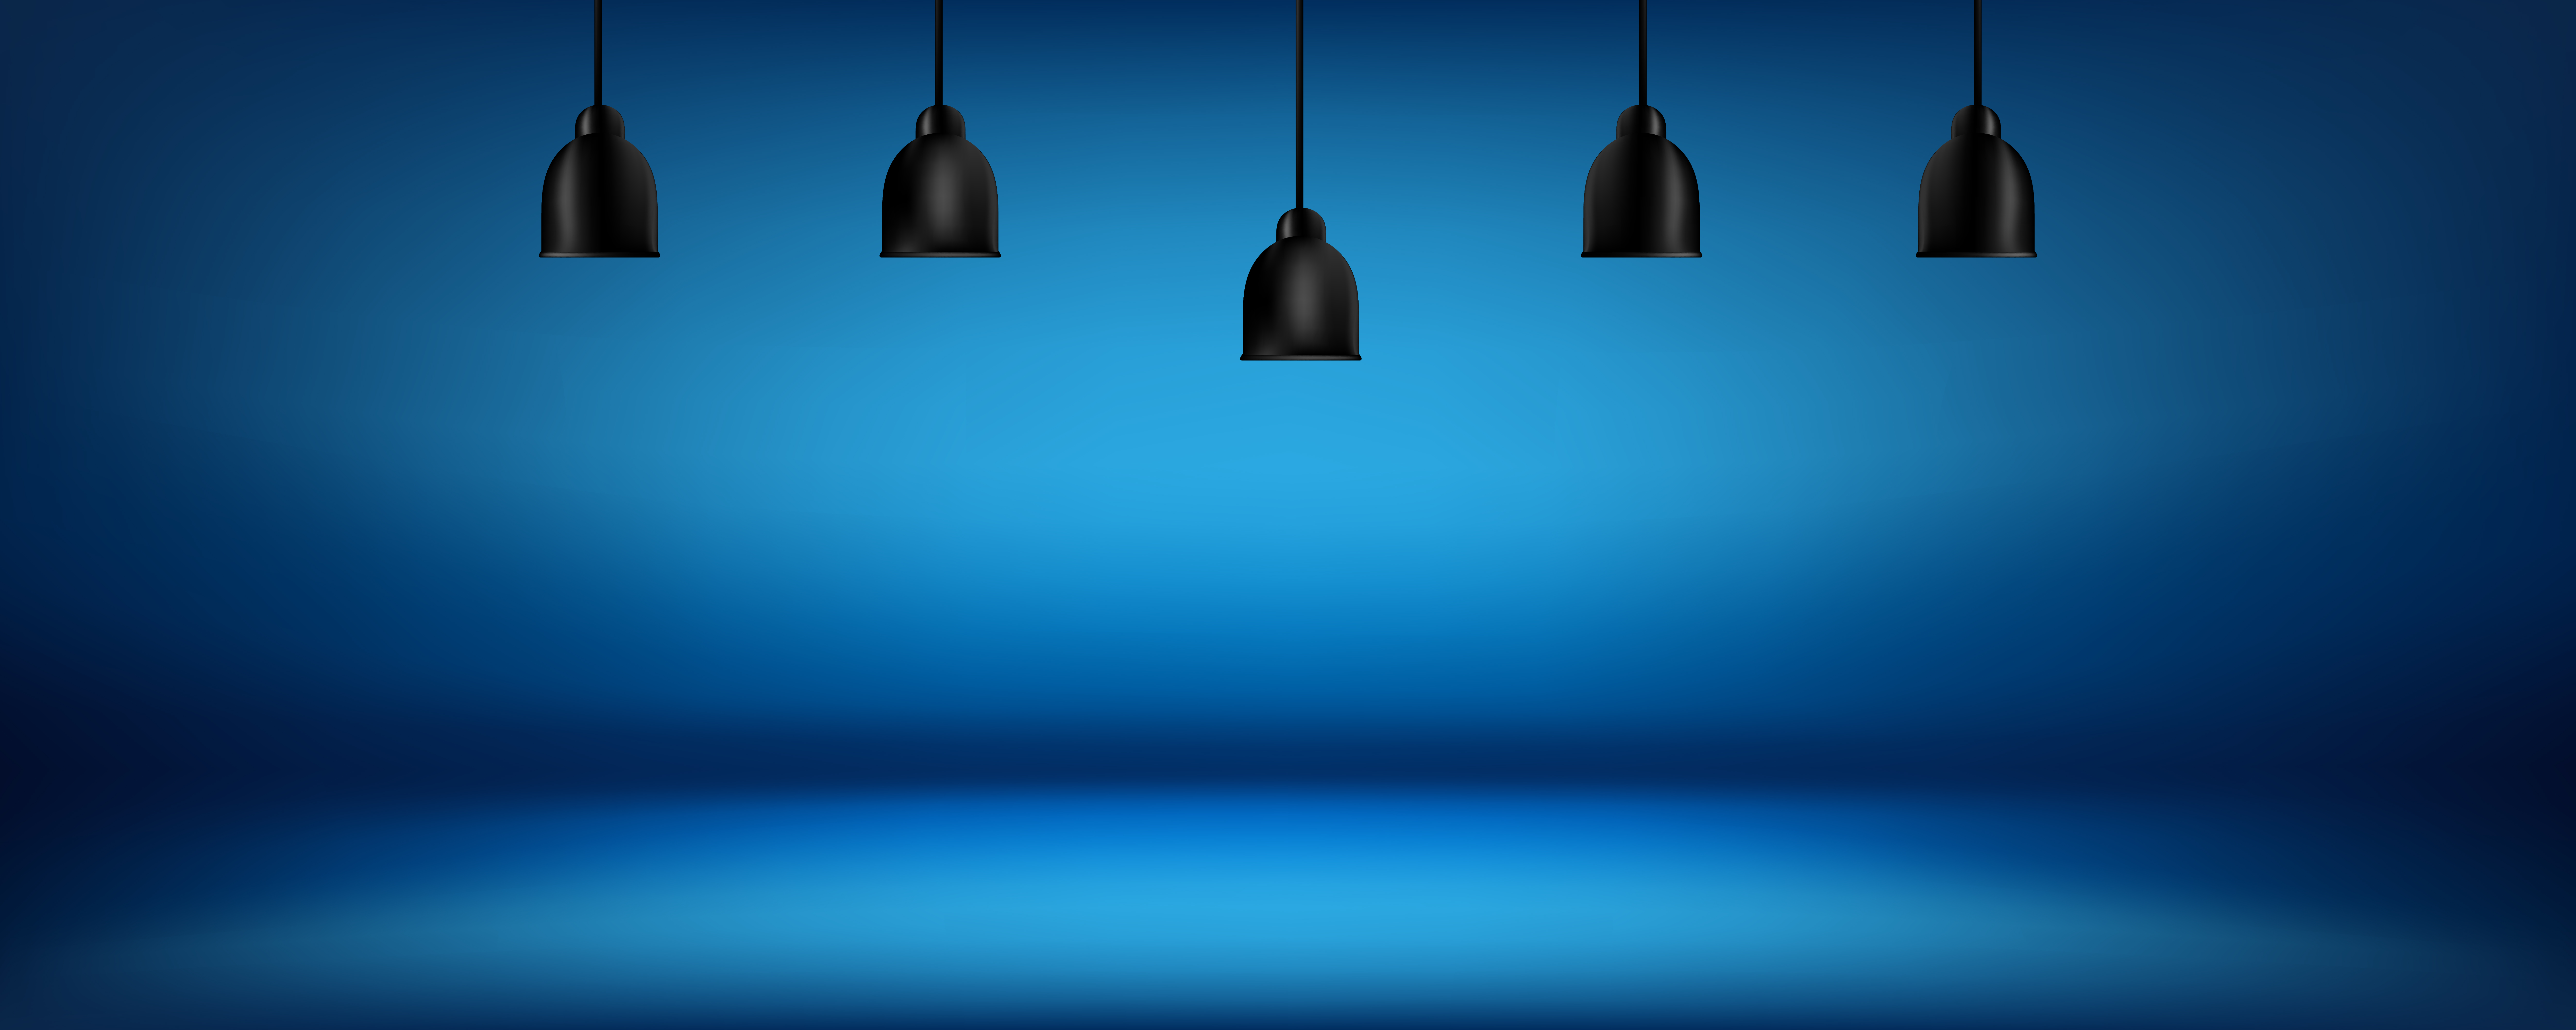 Blue Background With Light Boxes On Ceiling Abstract